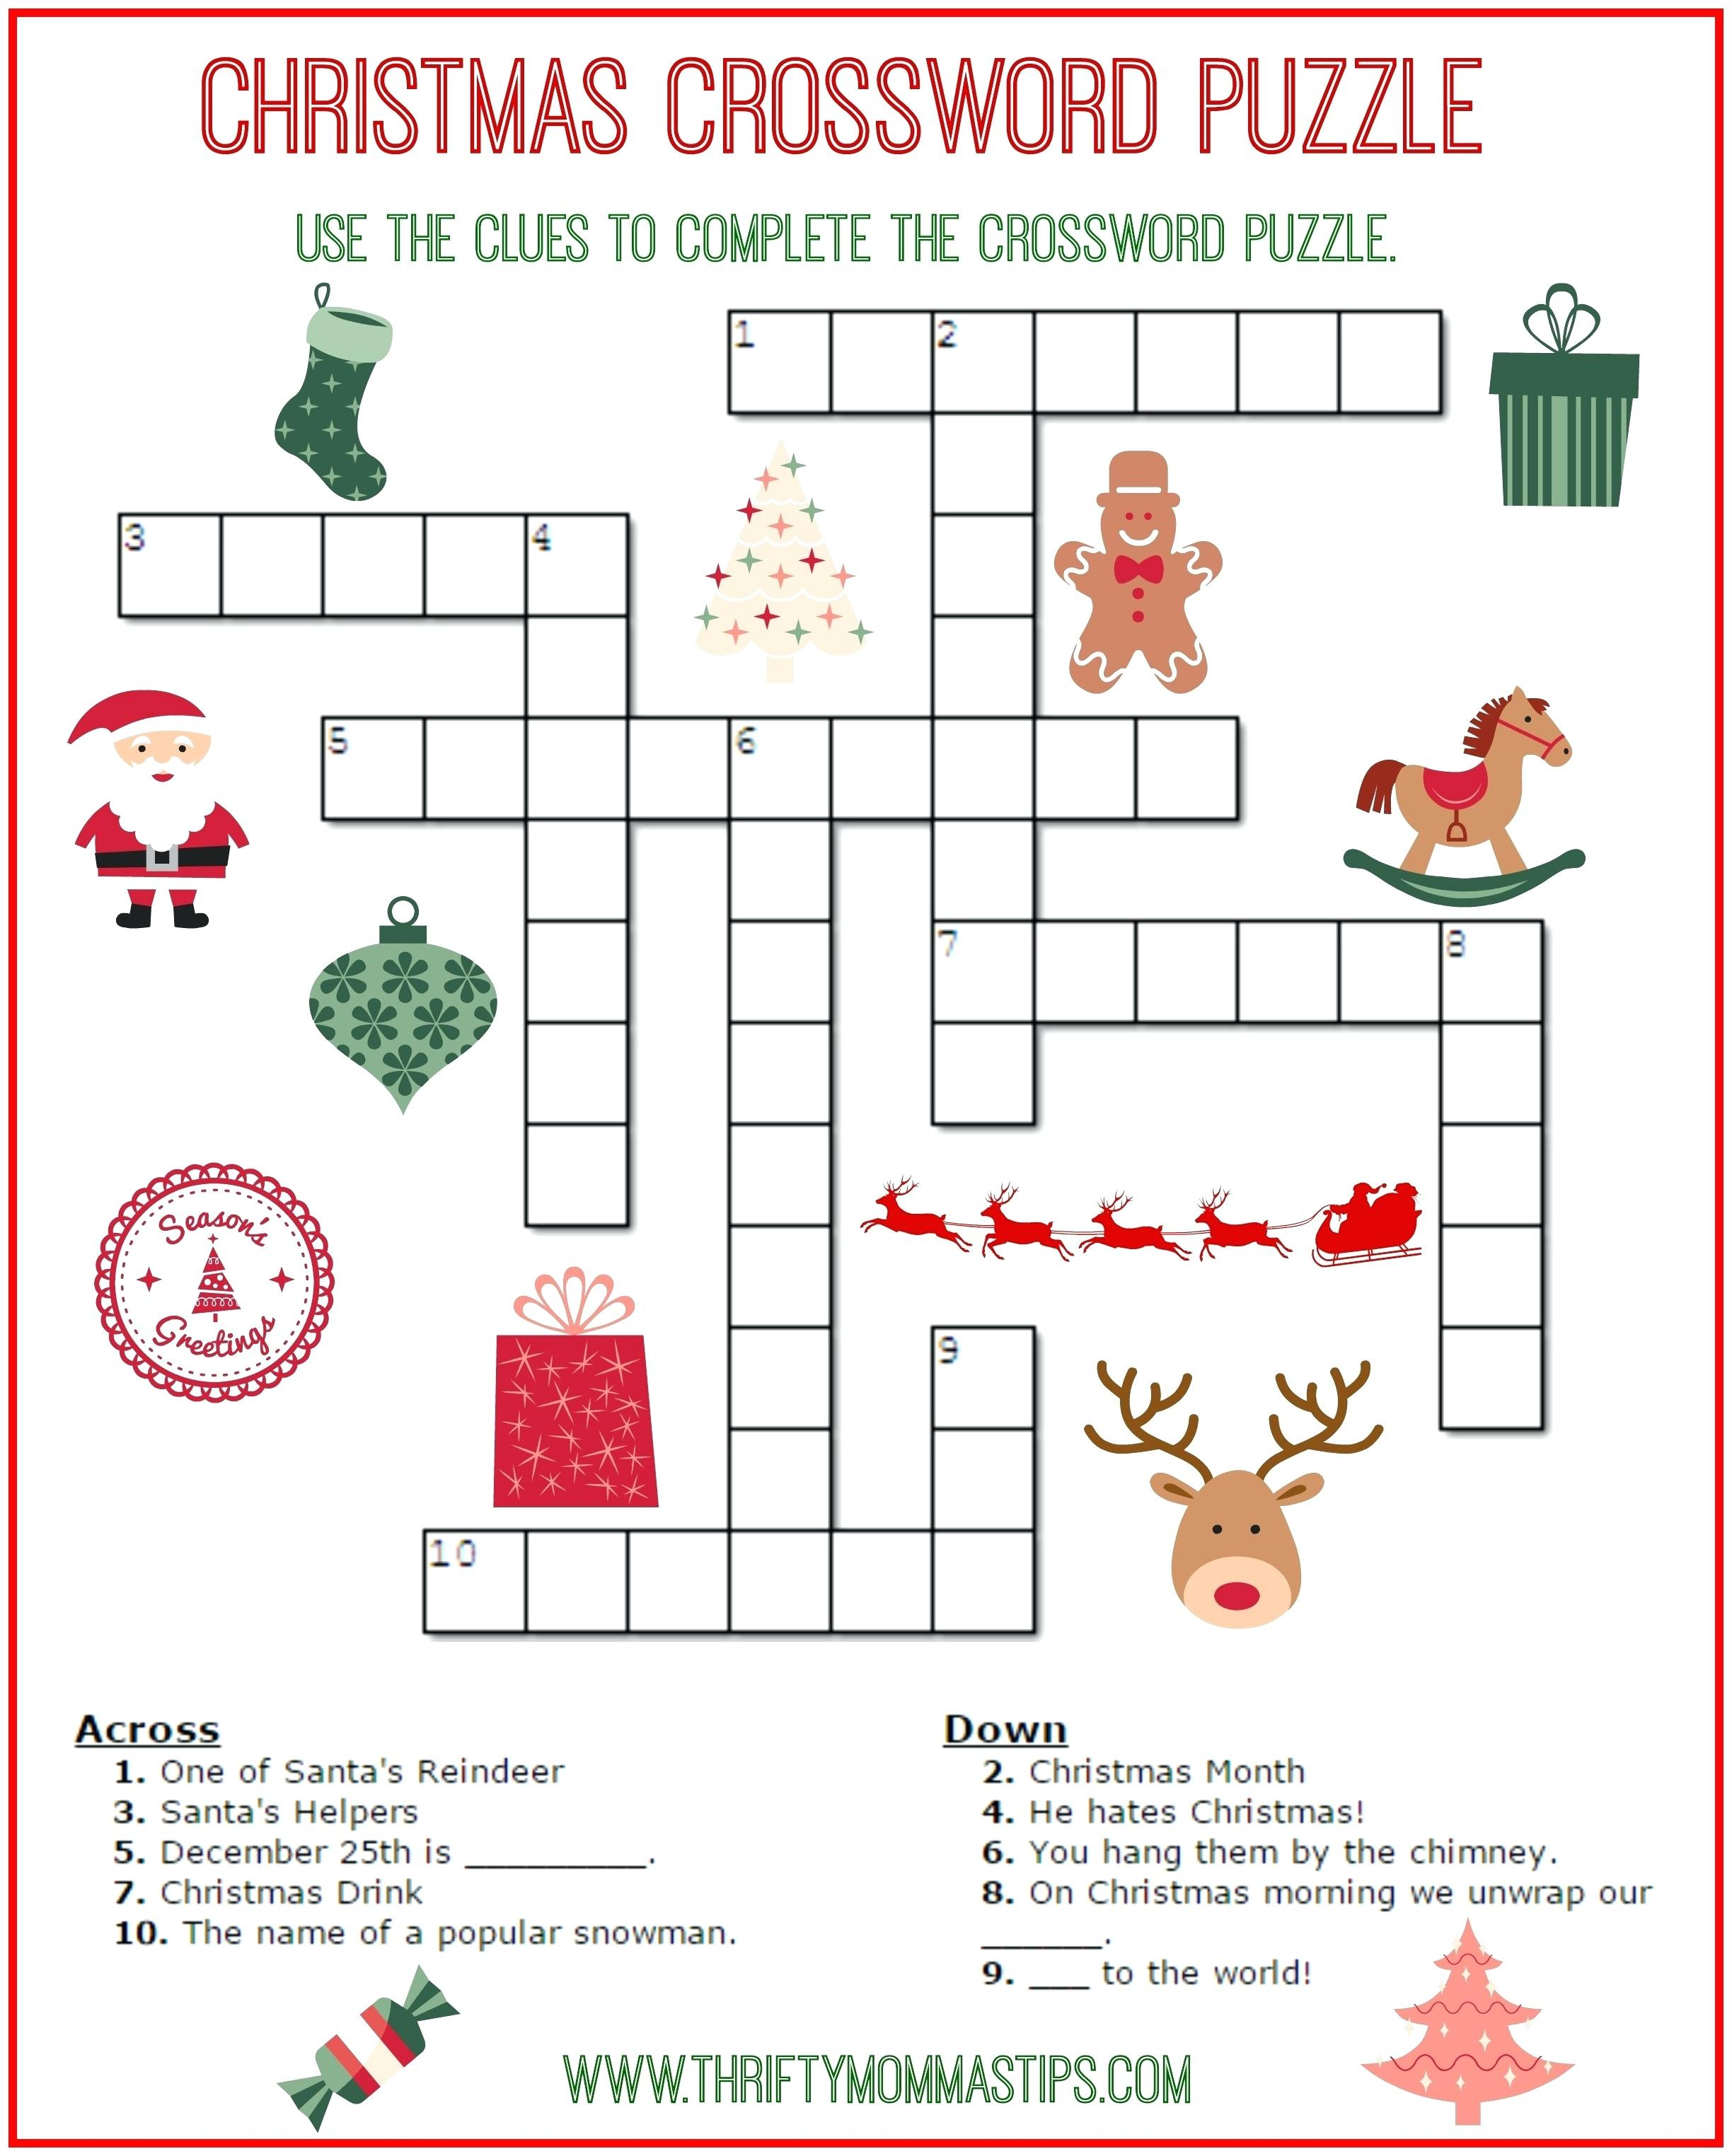 Free Printable Crossword Puzzles For Kids State Capitals Crossword - Printable Crossword Puzzles For Grade 7